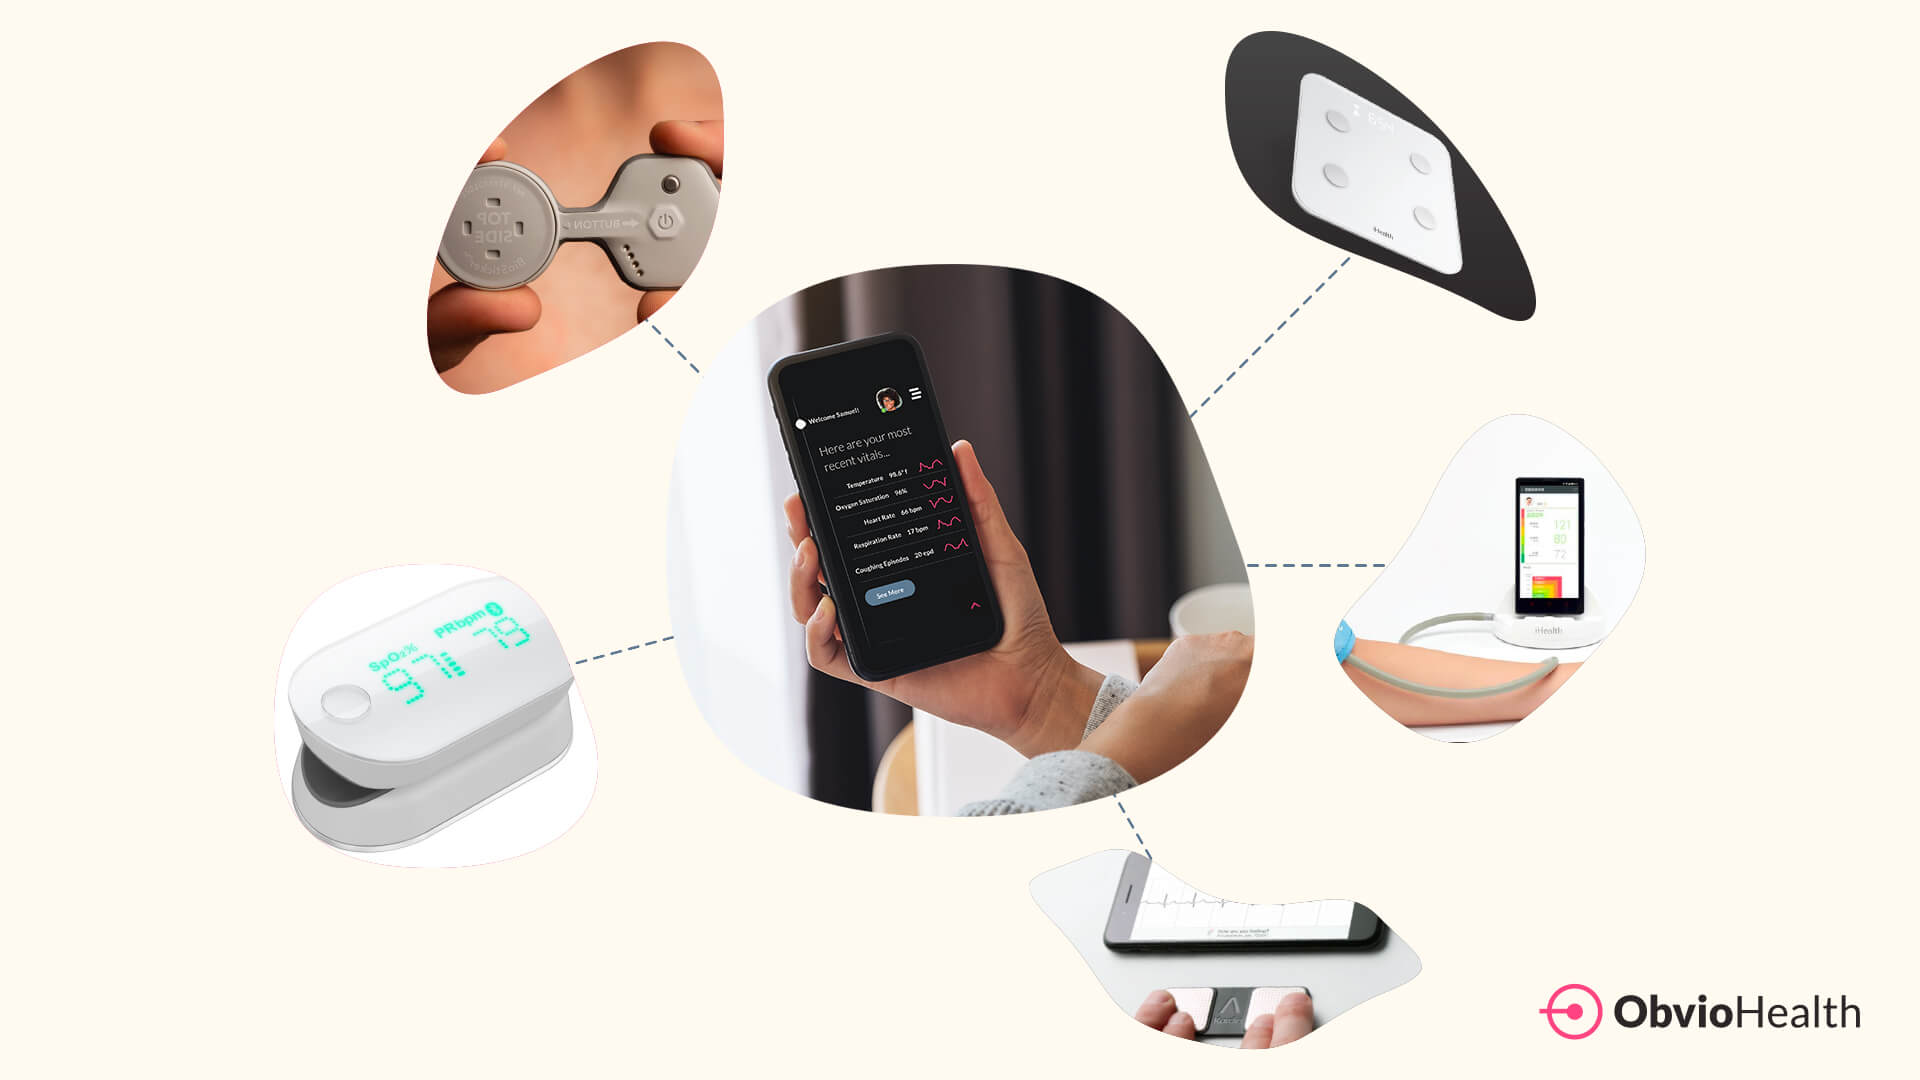 An graphic depicting device integration with the ObvioHealth App. Five devices shown.